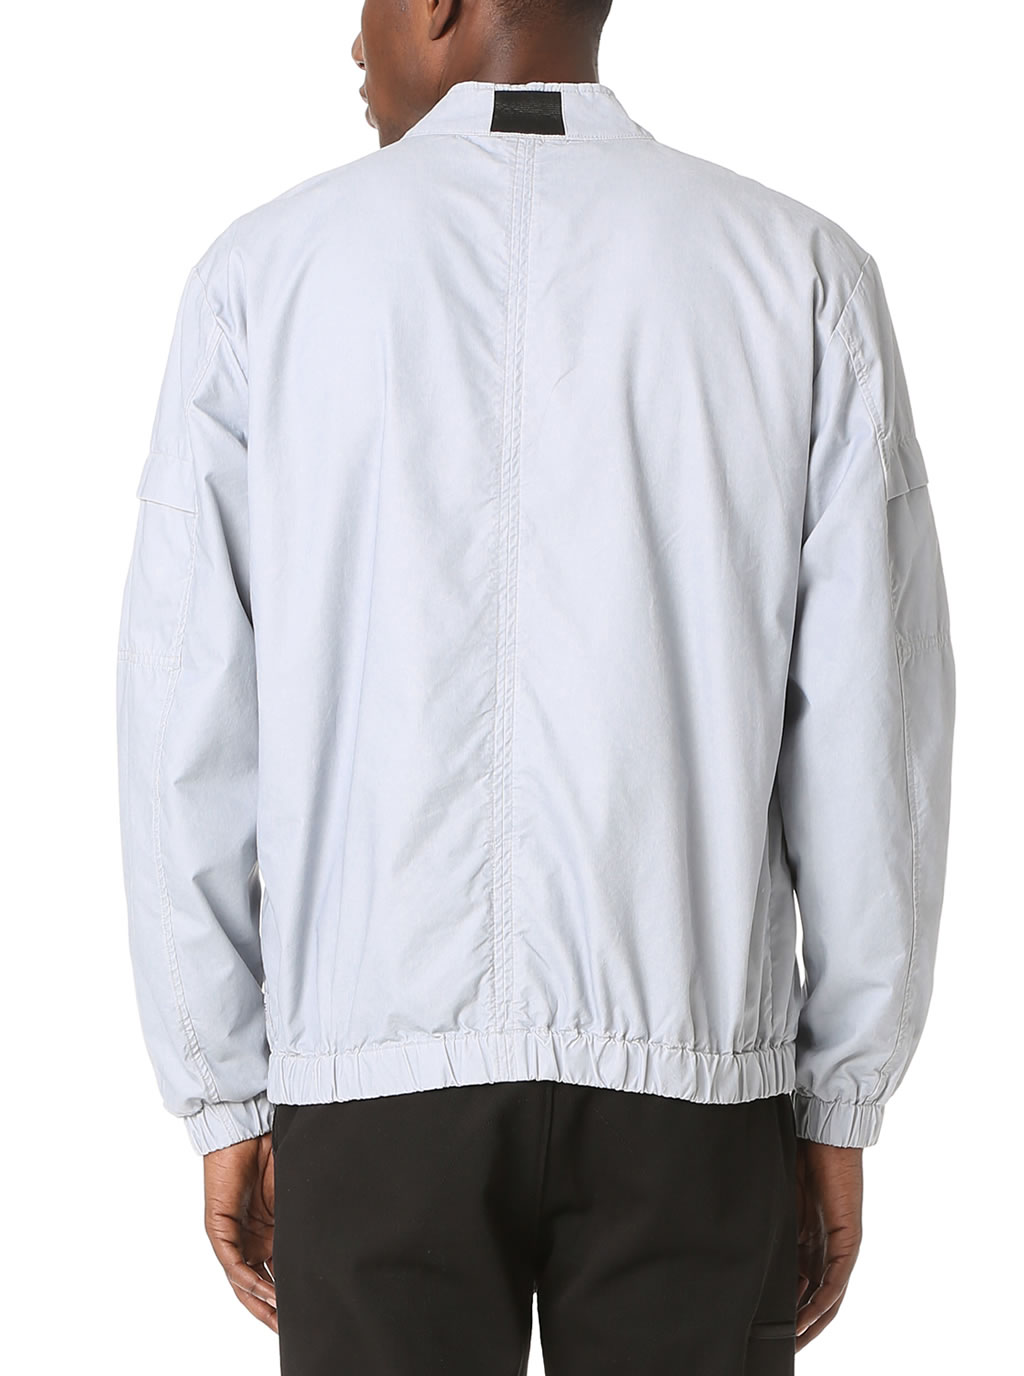 Zanerobe Trail Bomber Jacket For Men, Back